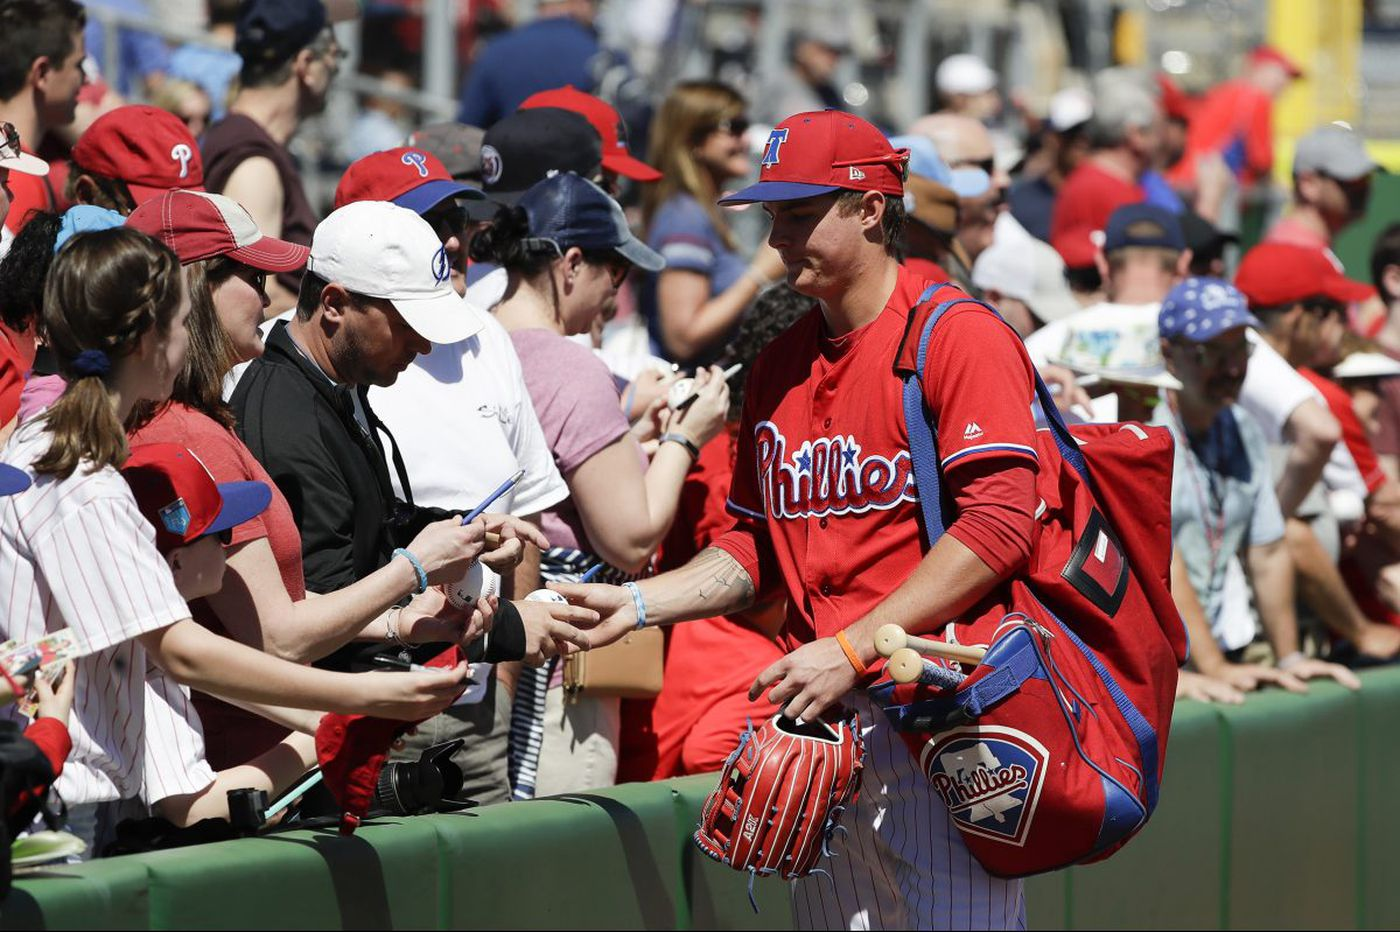 Phillies lose twice in one spring training day